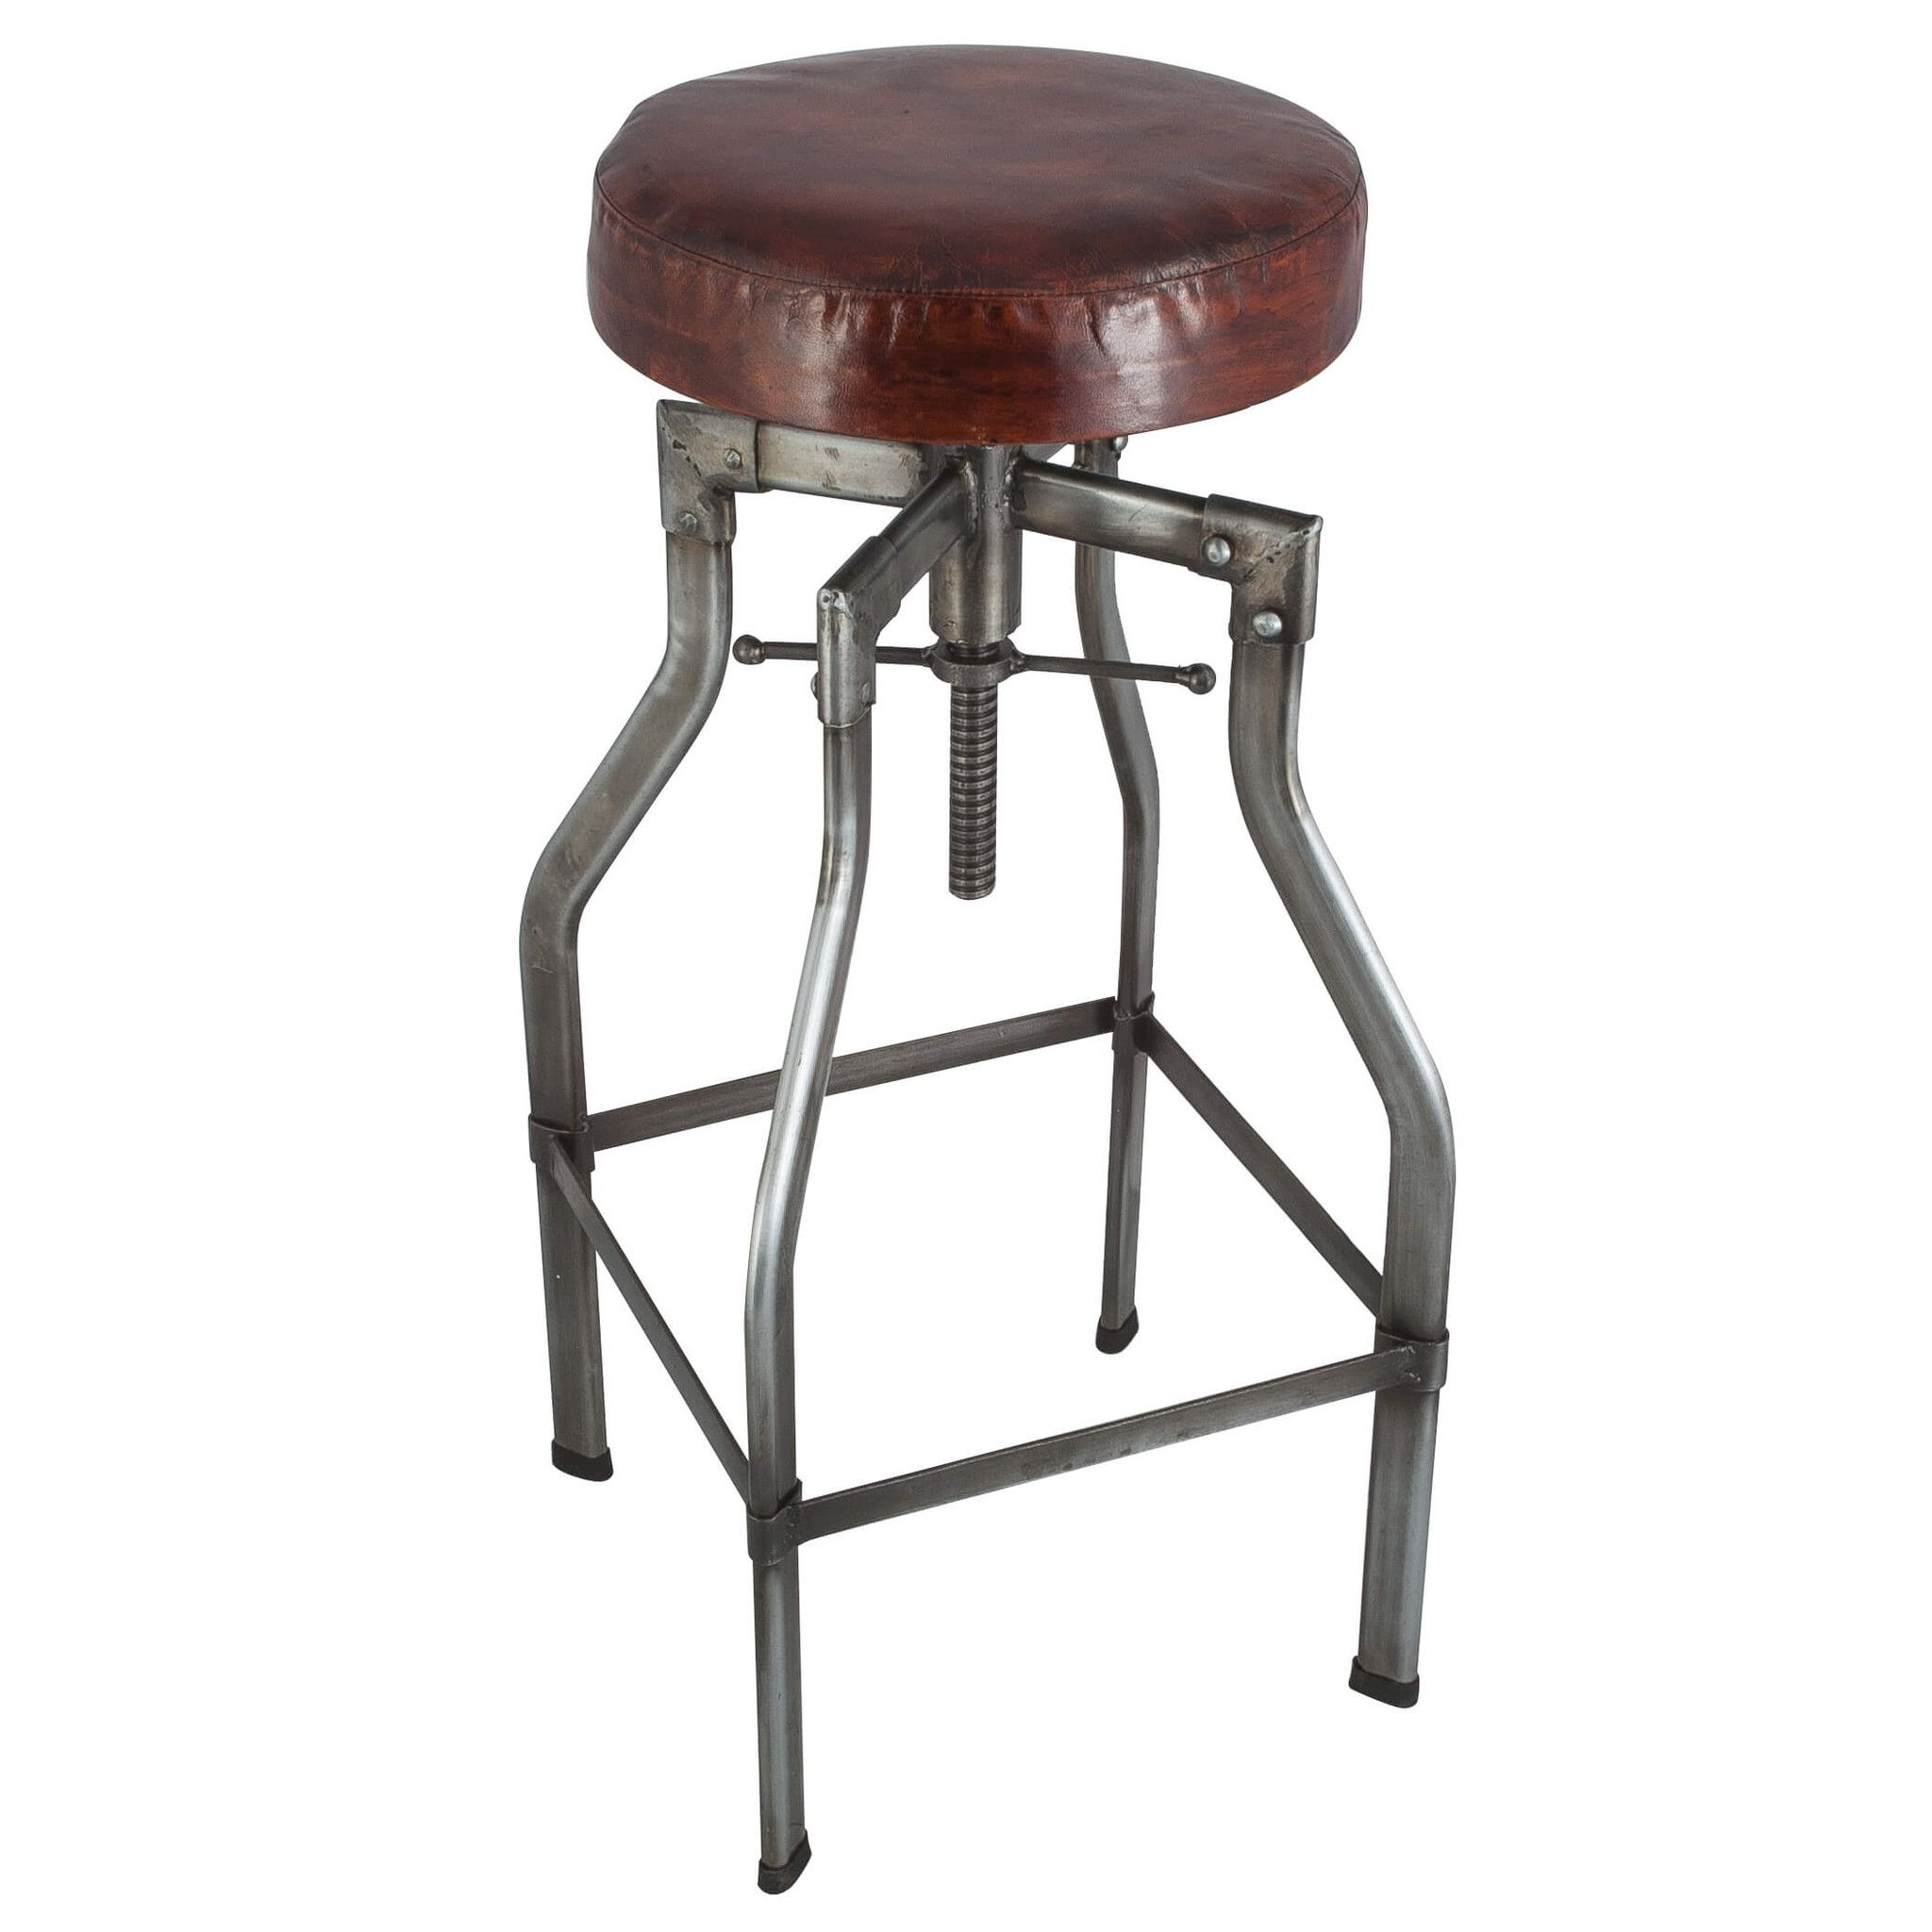 stool l marshalls large counter stools wicker of org with comfortable avazinternationaldance bar outdoor backs